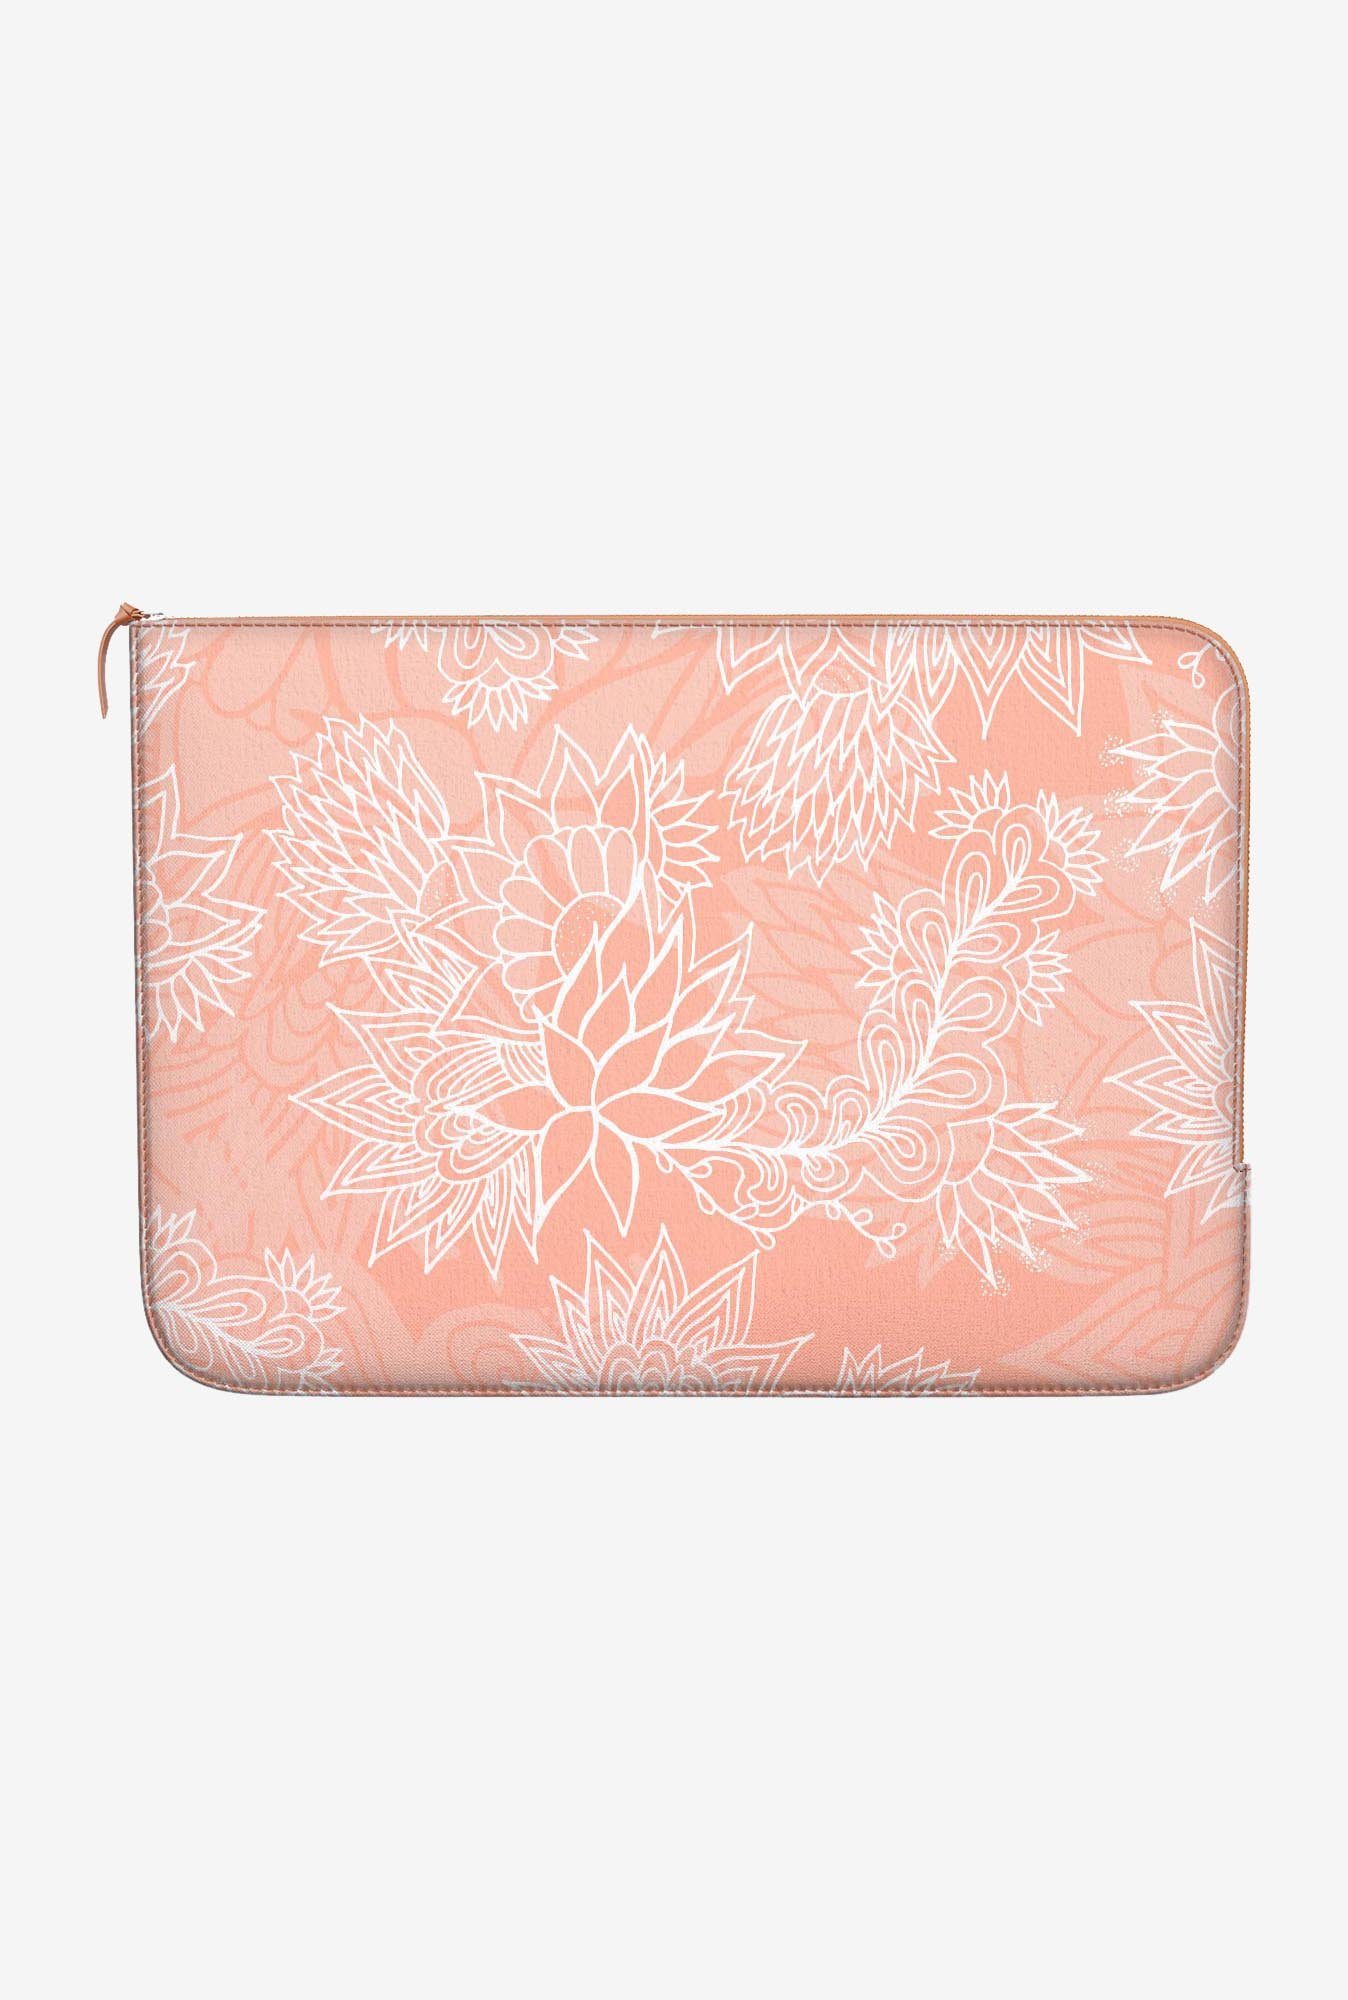 DailyObjects Chic Floral MacBook Air 11 Zippered Sleeve